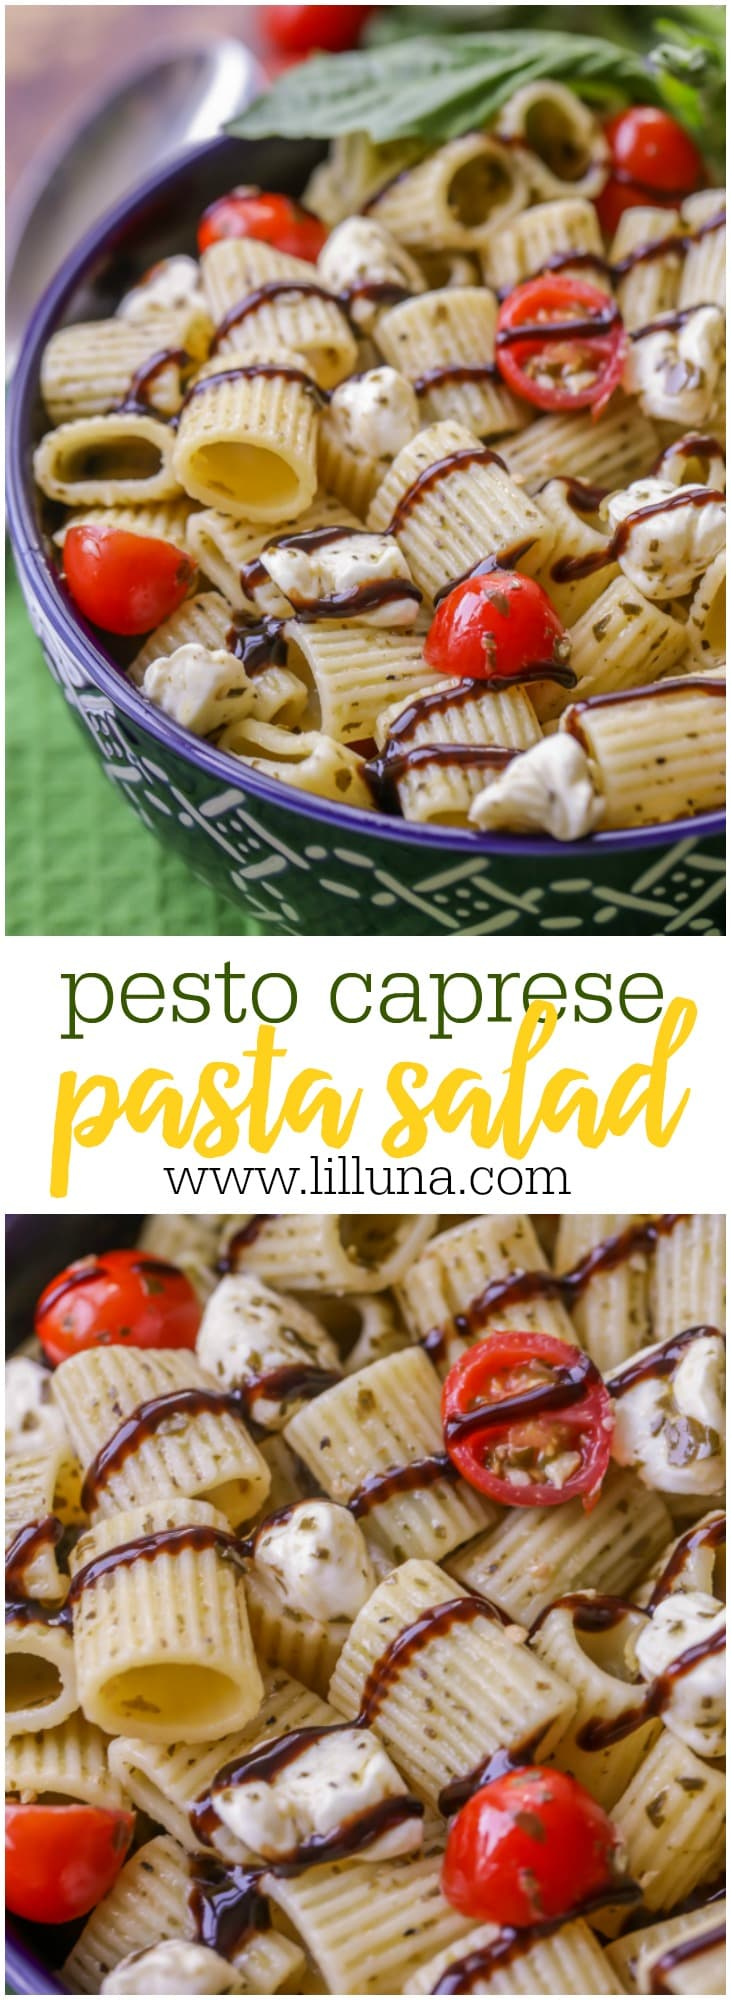 Pesto Caprese Pasta Salad - a pasta salad covered in basil and filled with mozzarella balls, tomatoes, basil and balsamic vinaigrette reduction sauce.